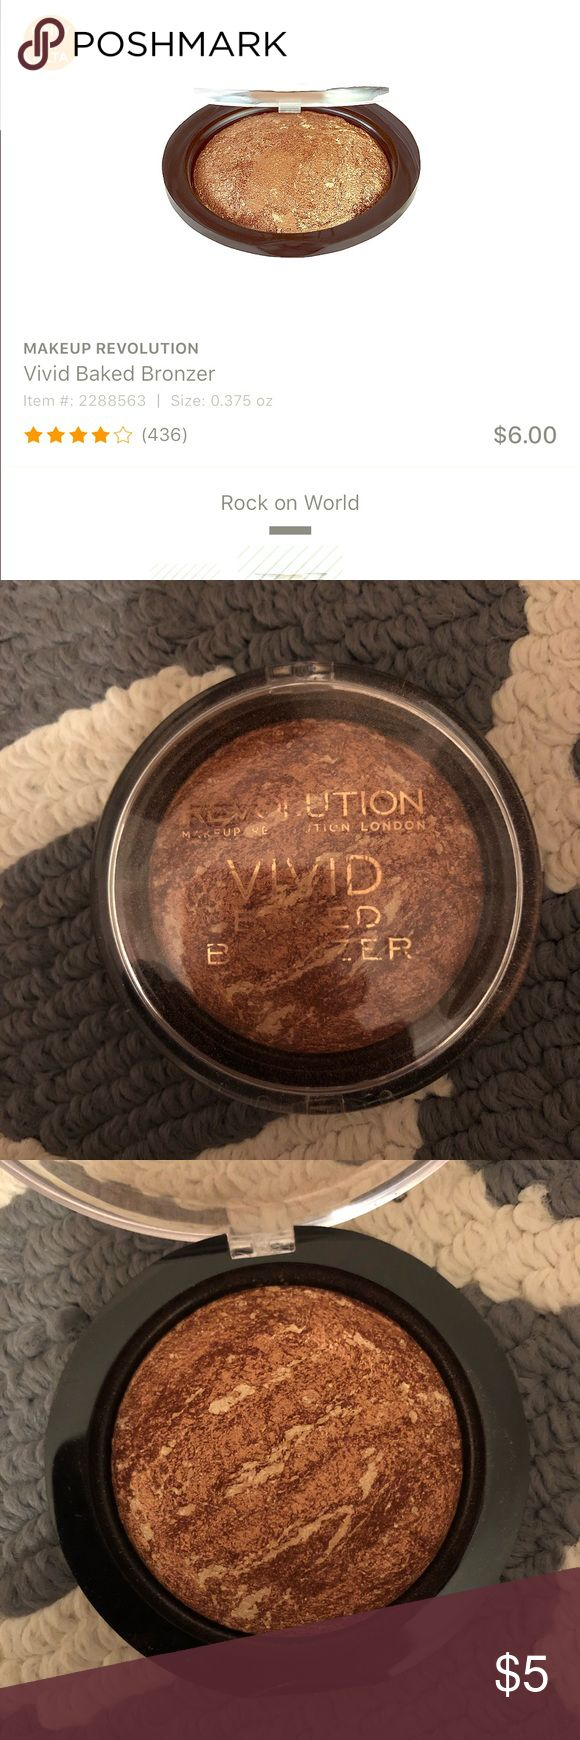 Makeup Revolution vivid baked bronzer Makeup revolution